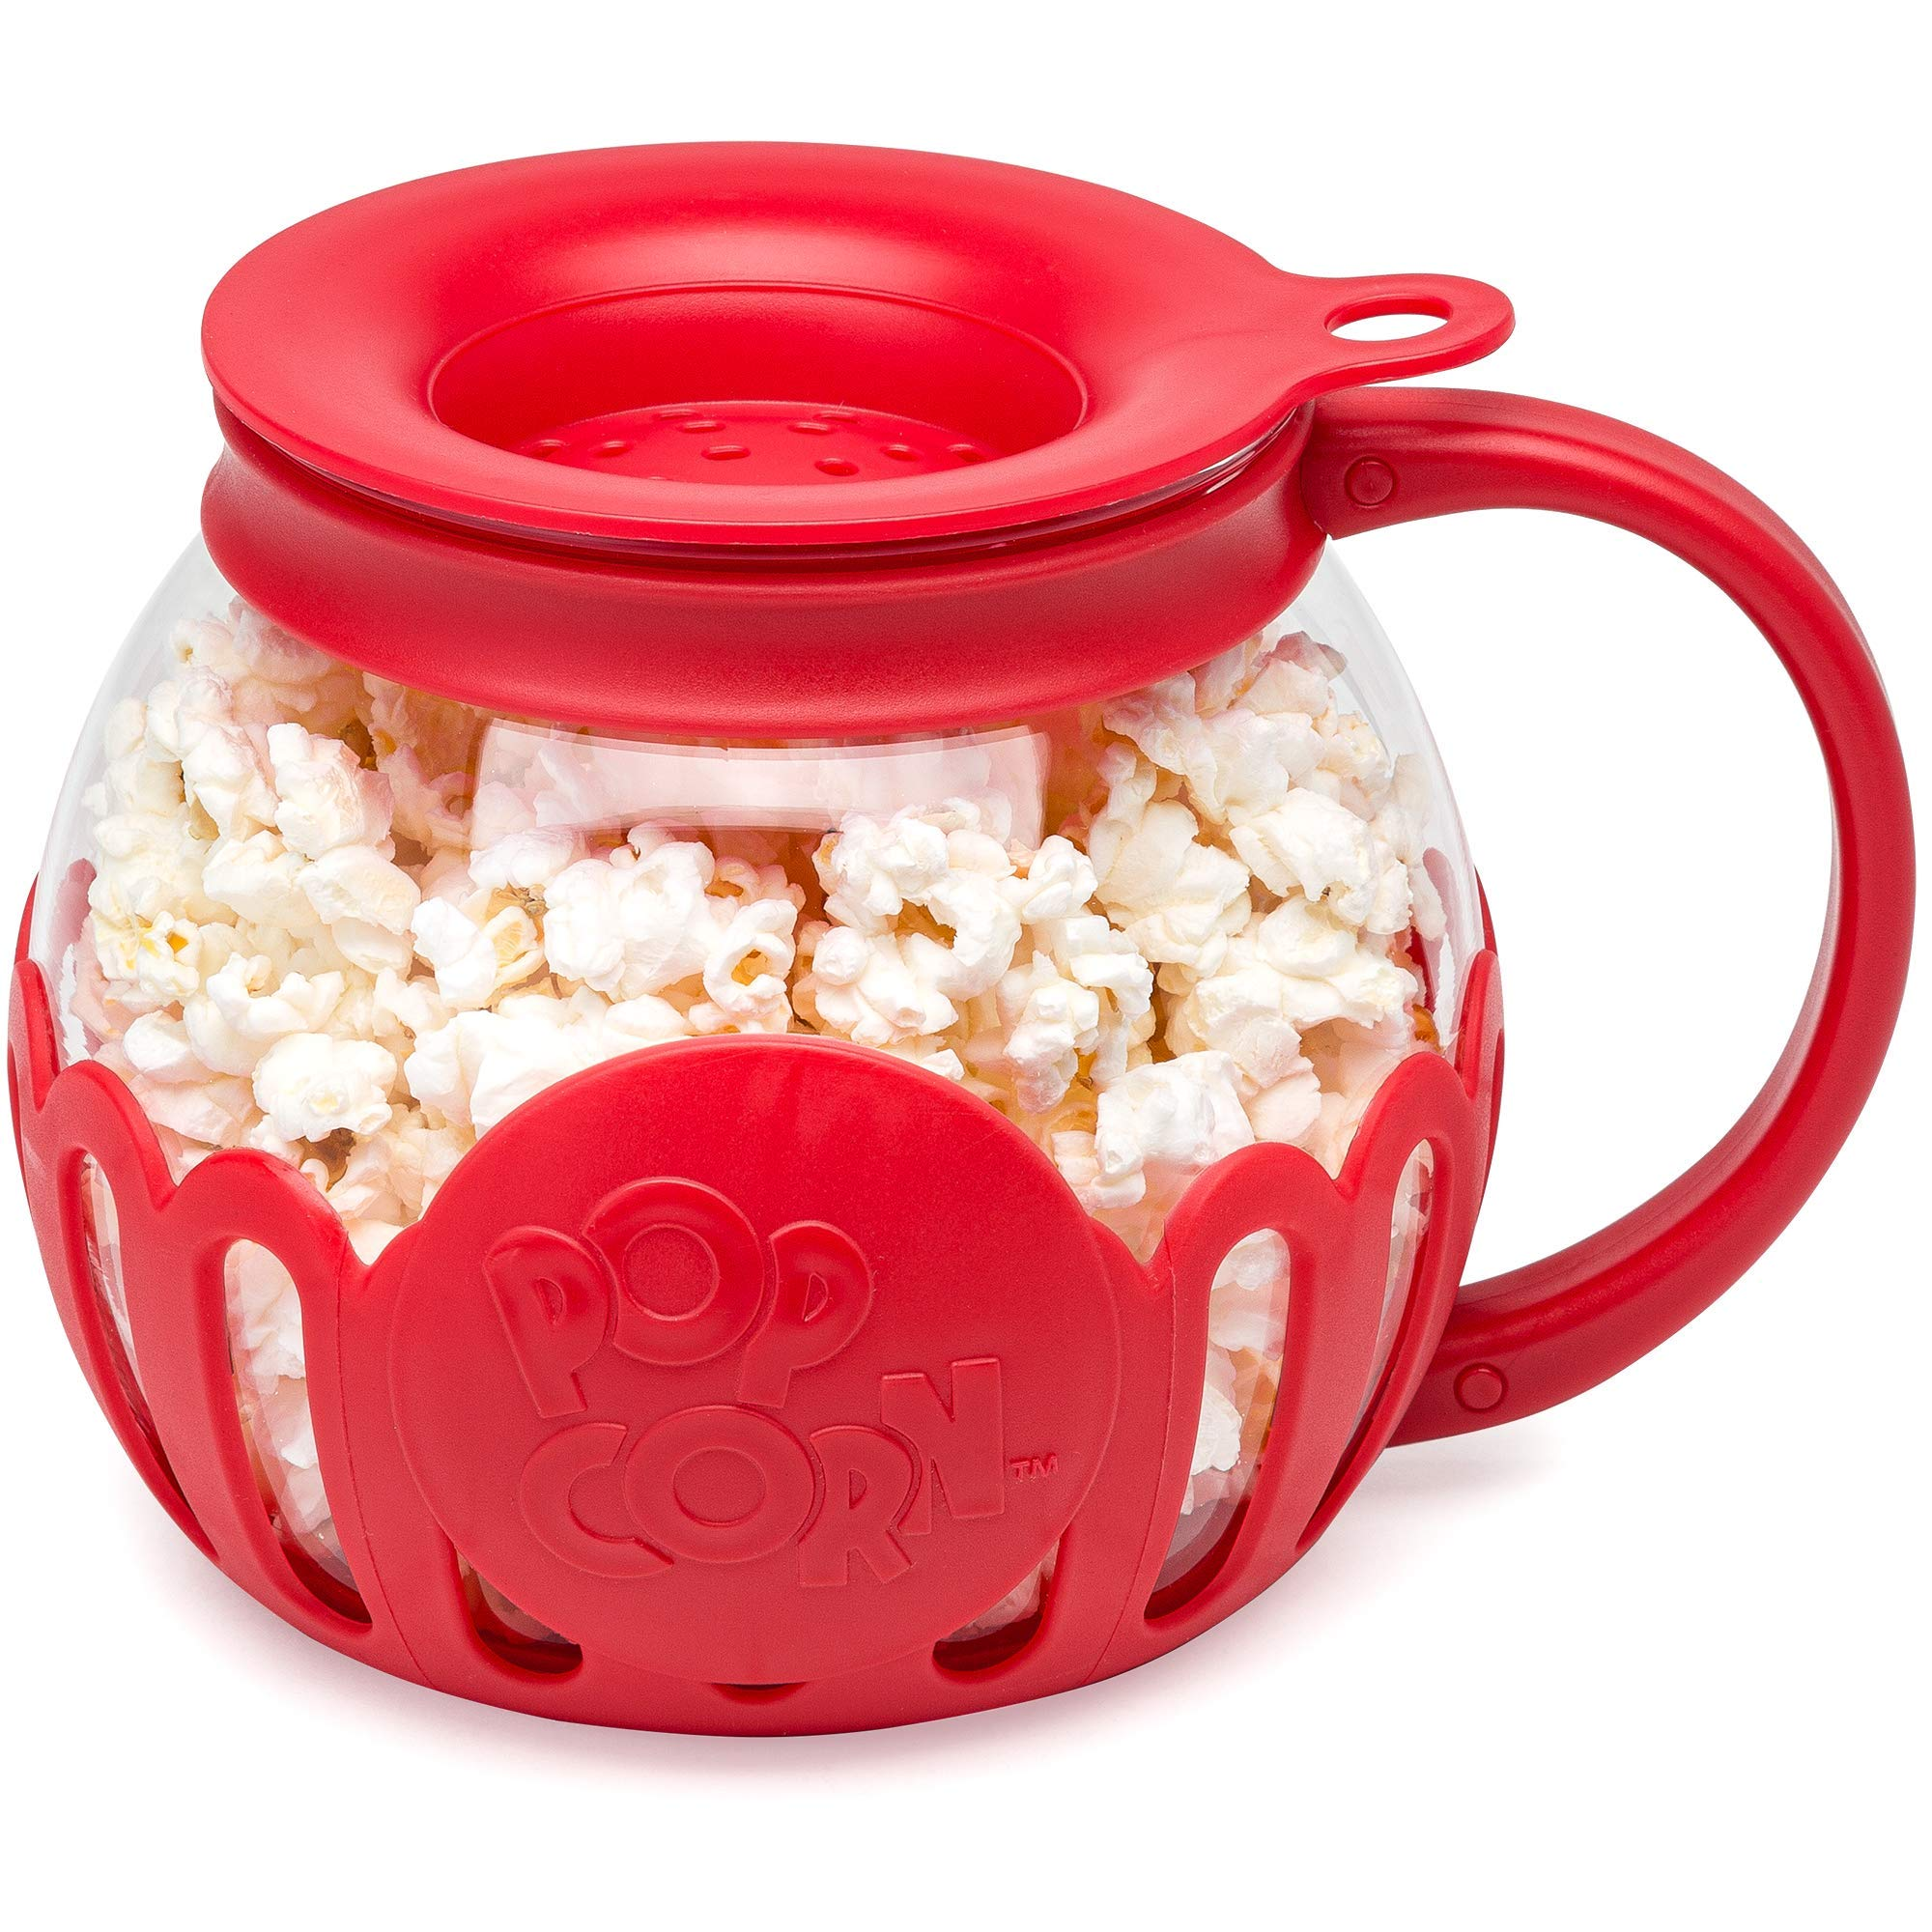 Ecolution EKPRE-4215 Original Microwave Micro-Pop Popcorn Popper, Borosilicate Glass, 3-in-1 Silicone Lid, Dishwasher Safe, BPA Free, 1.5 Qt - Snack Size, Red by Ecolution